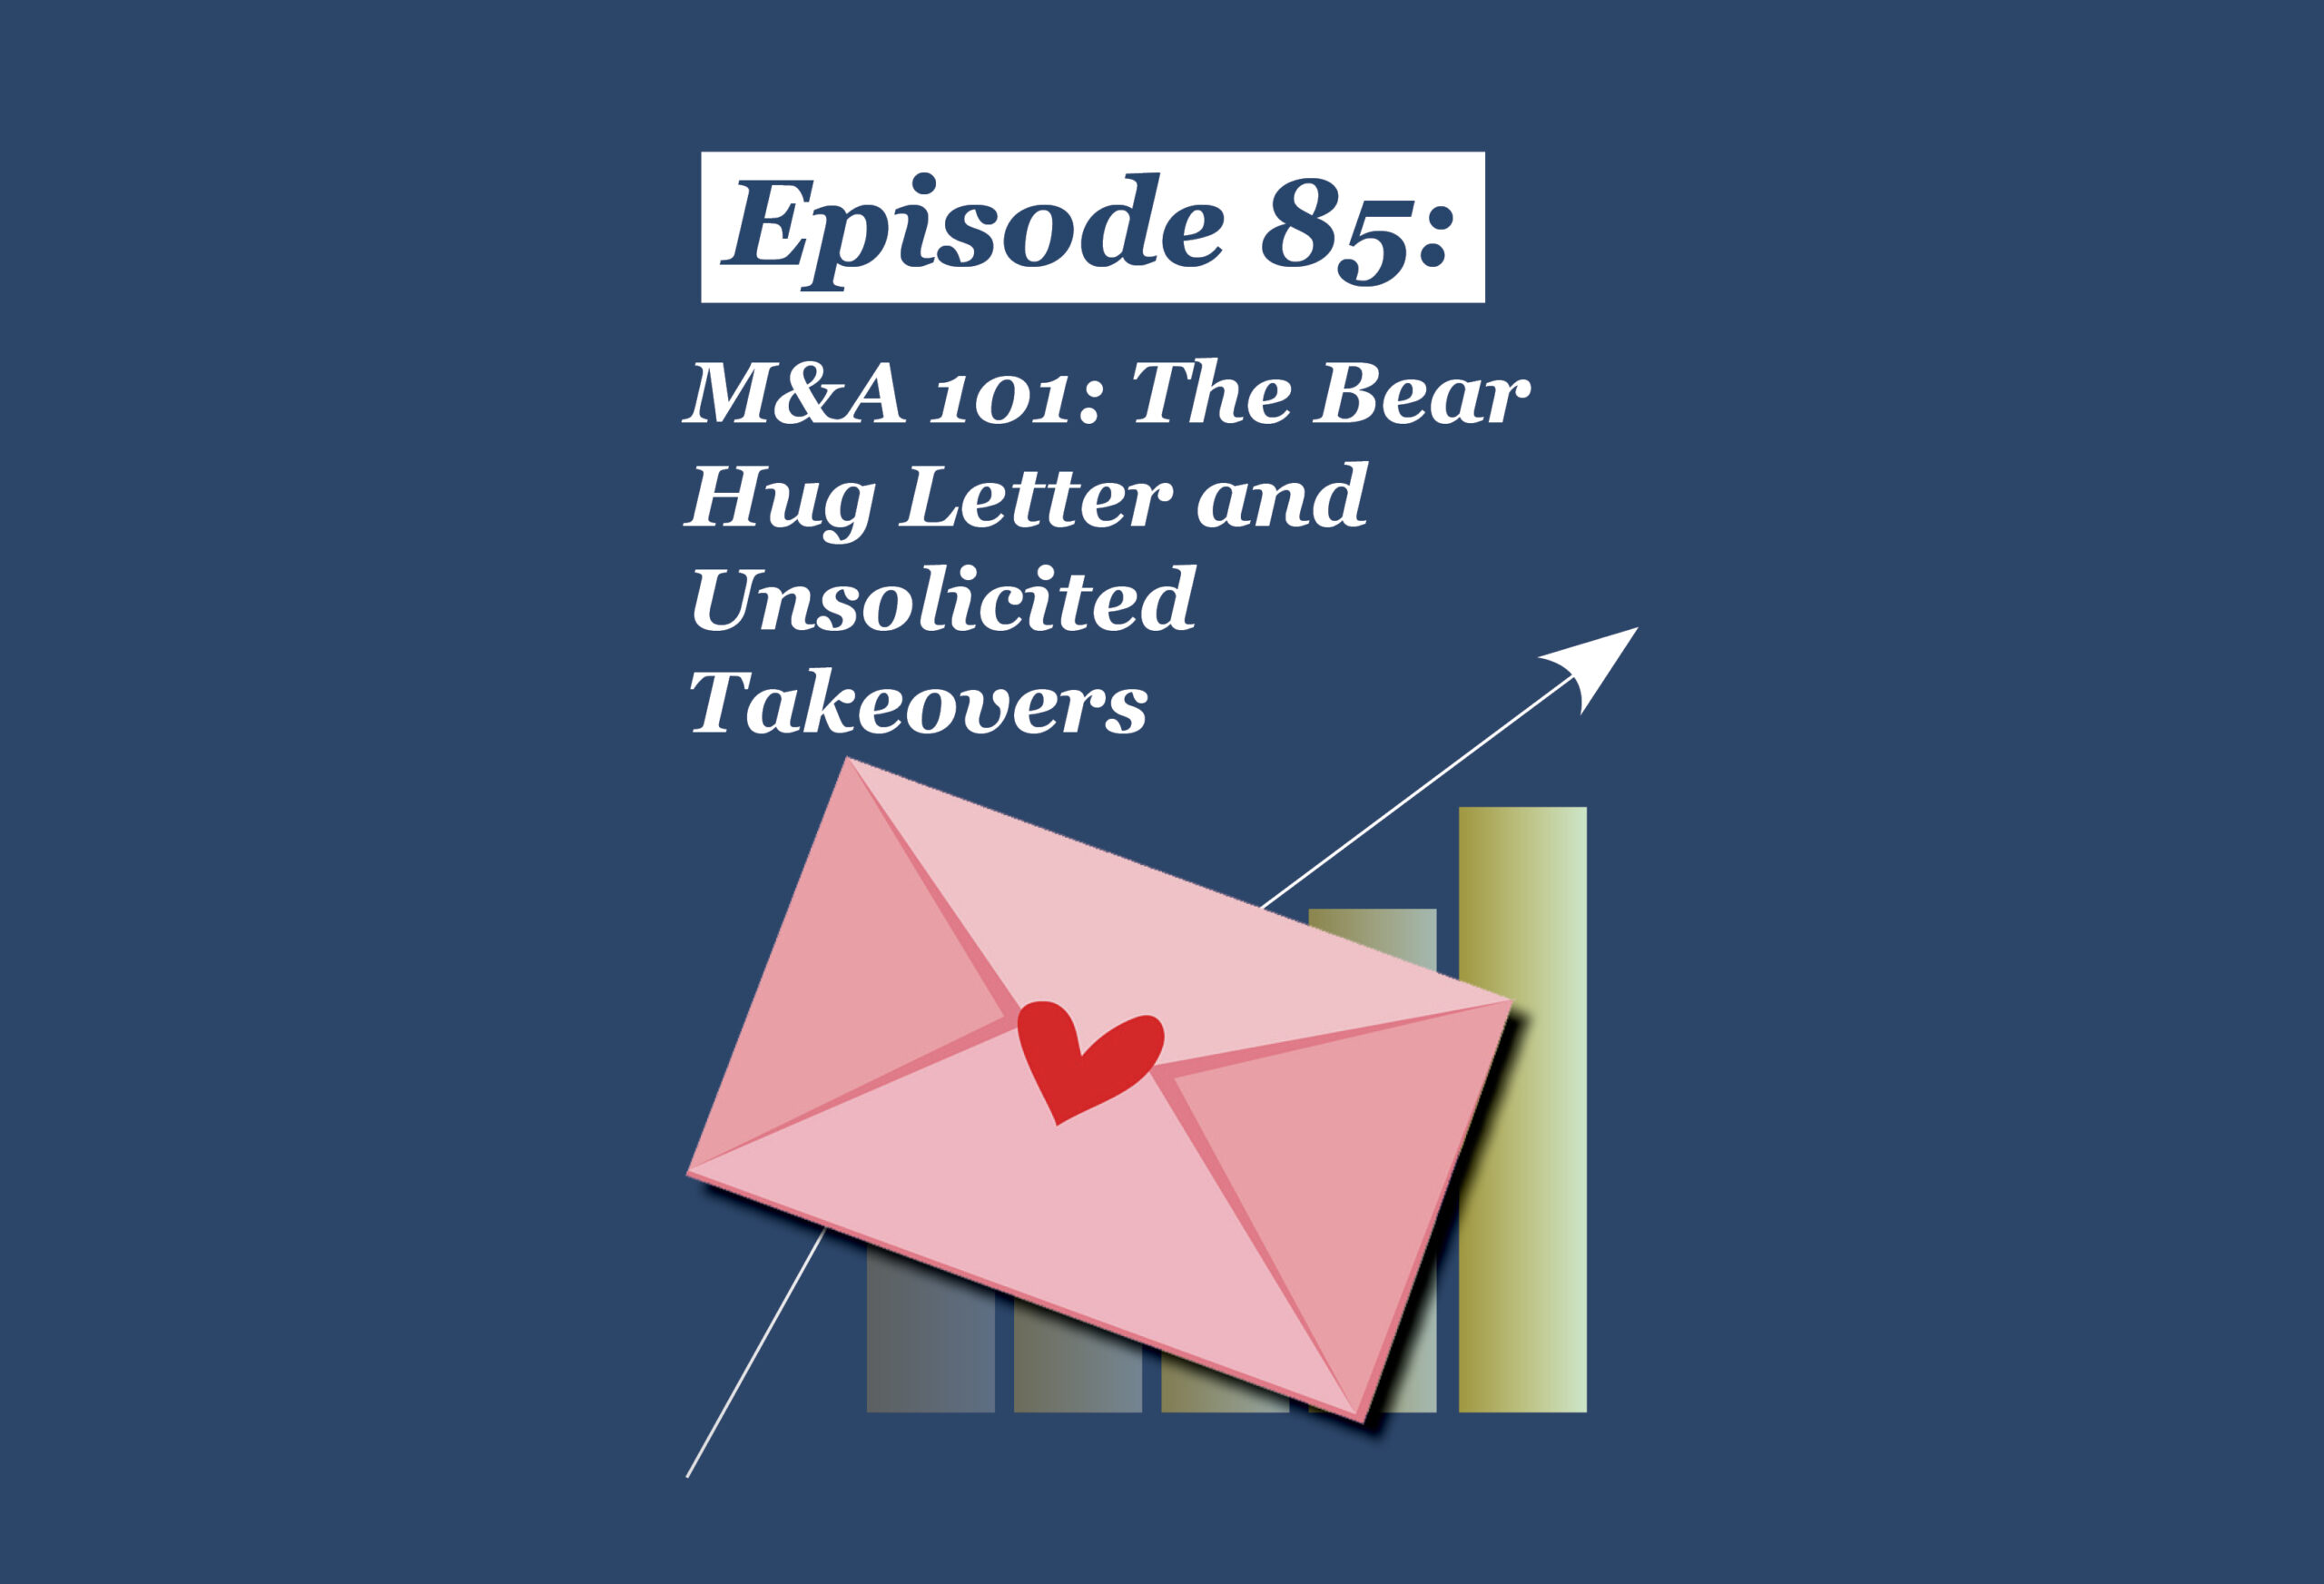 Absolute Return Podcast #85: M&A 101: The Bear Hug Letter and Unsolicited Takeovers